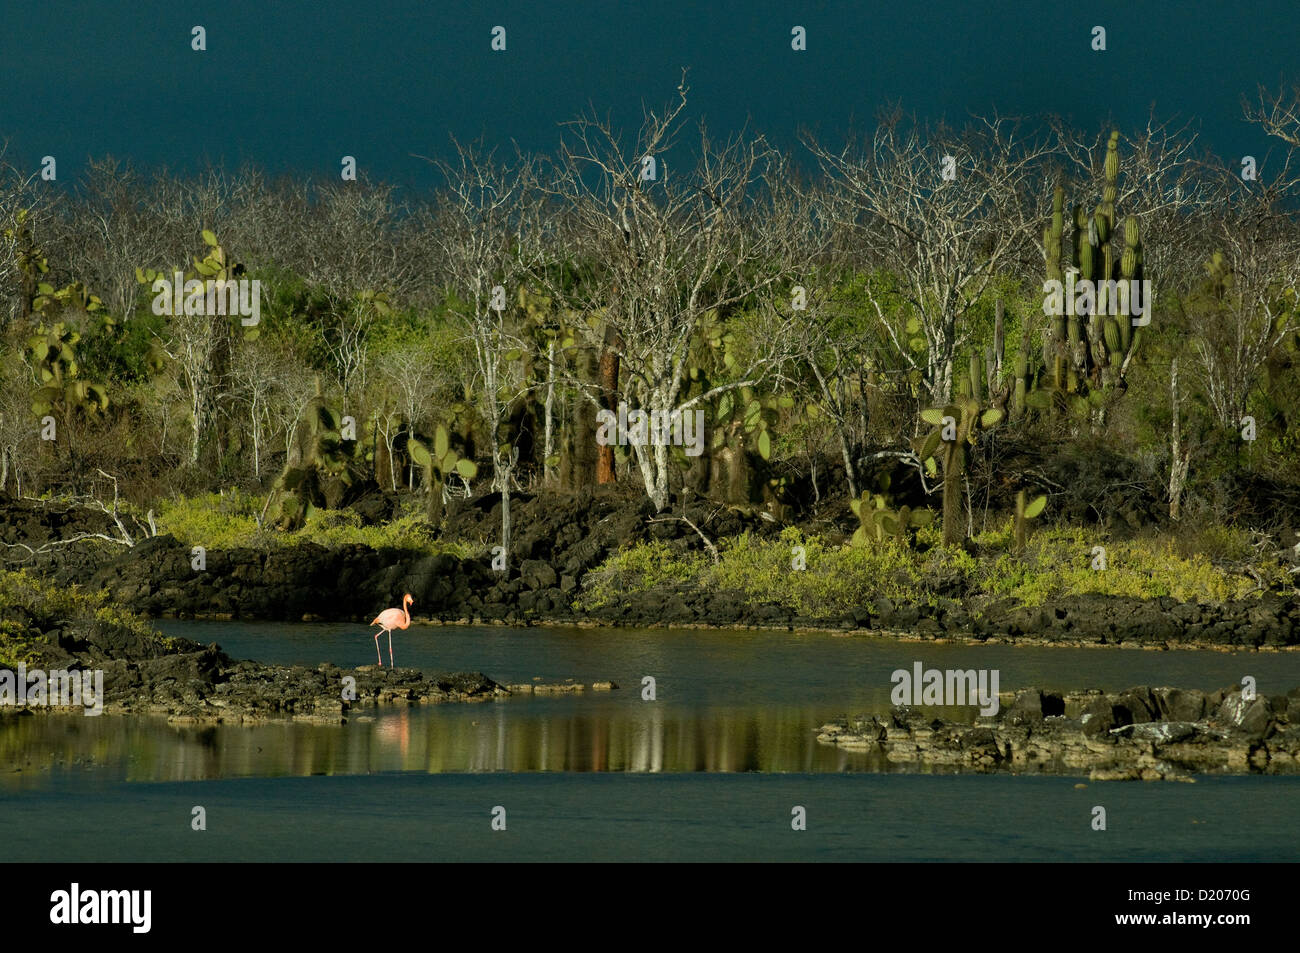 A single pink flamingo shines against a small green-edged lake on Santa Cruz island in the peaceable Galapagos - Stock Image